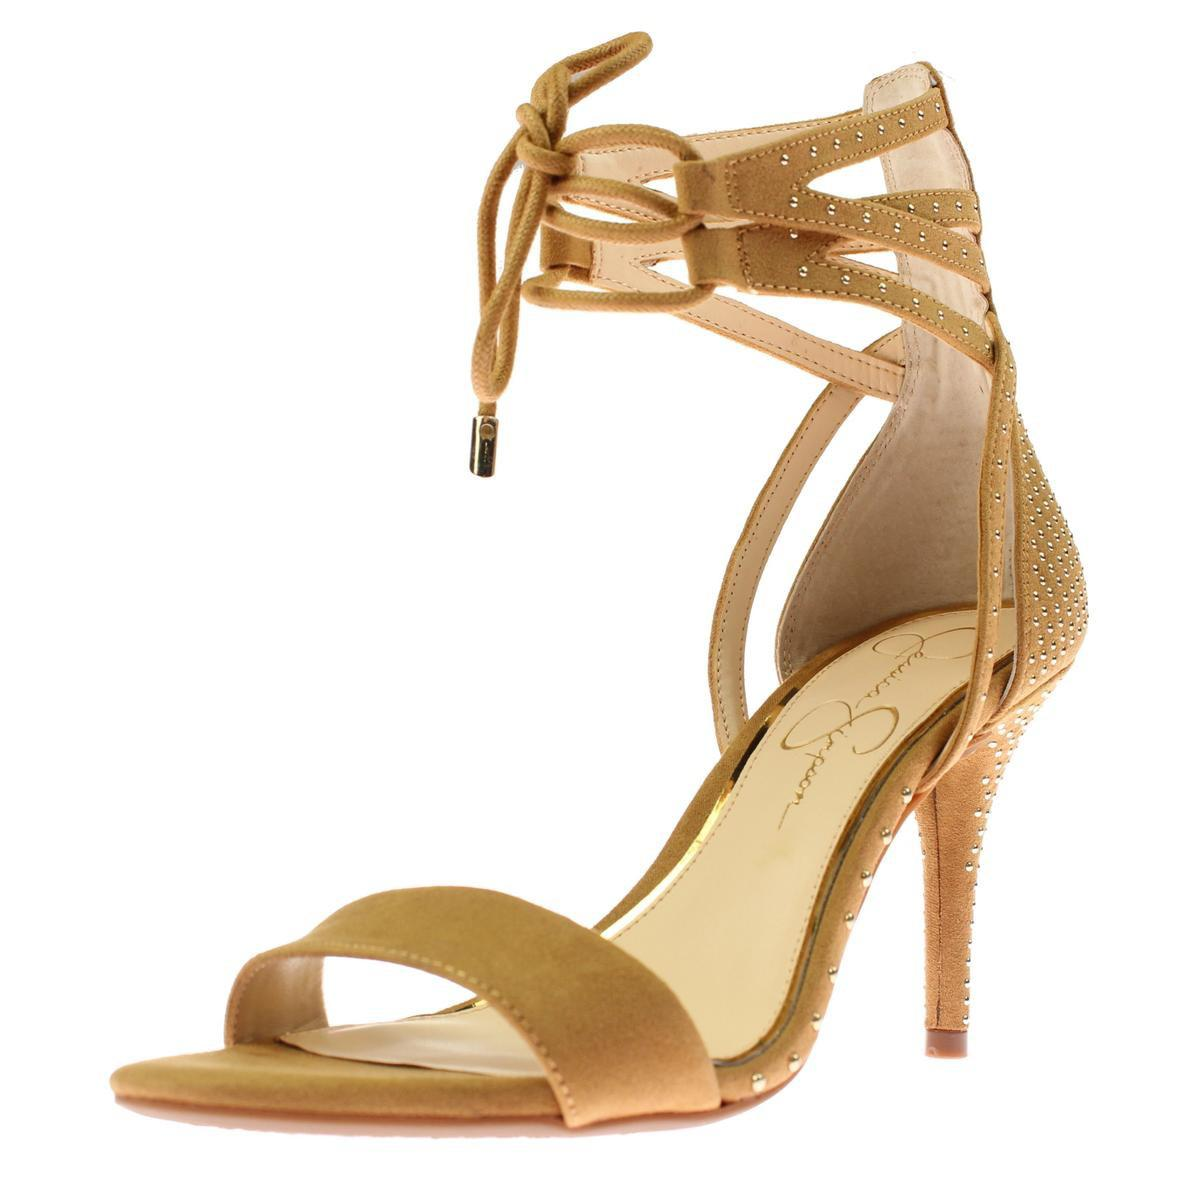 964dc380fc76 Lyst - Jessica Simpson Womens Maevi Microsuede Studded Gladiator ...